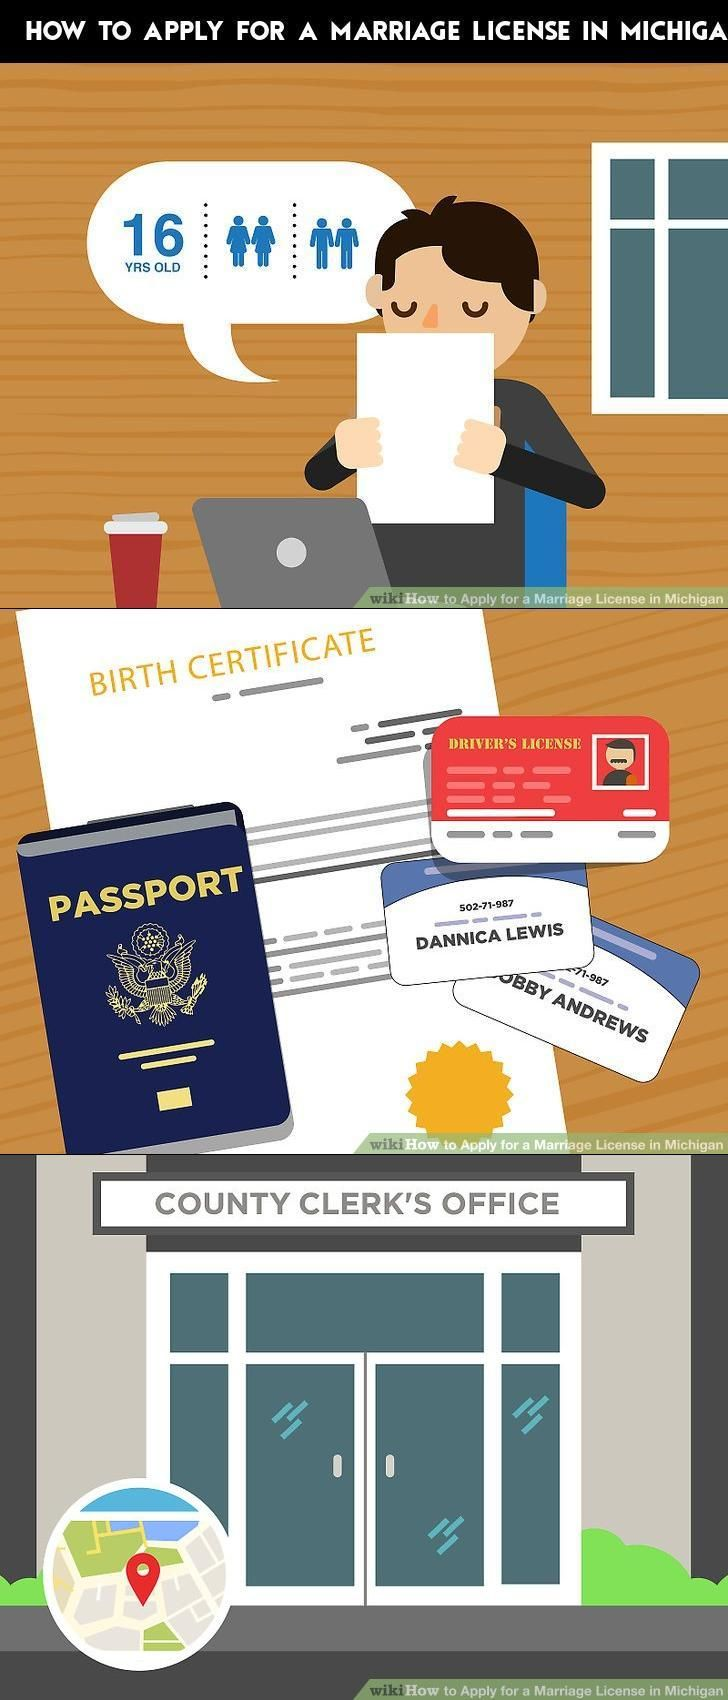 Index of marriage license marriage application